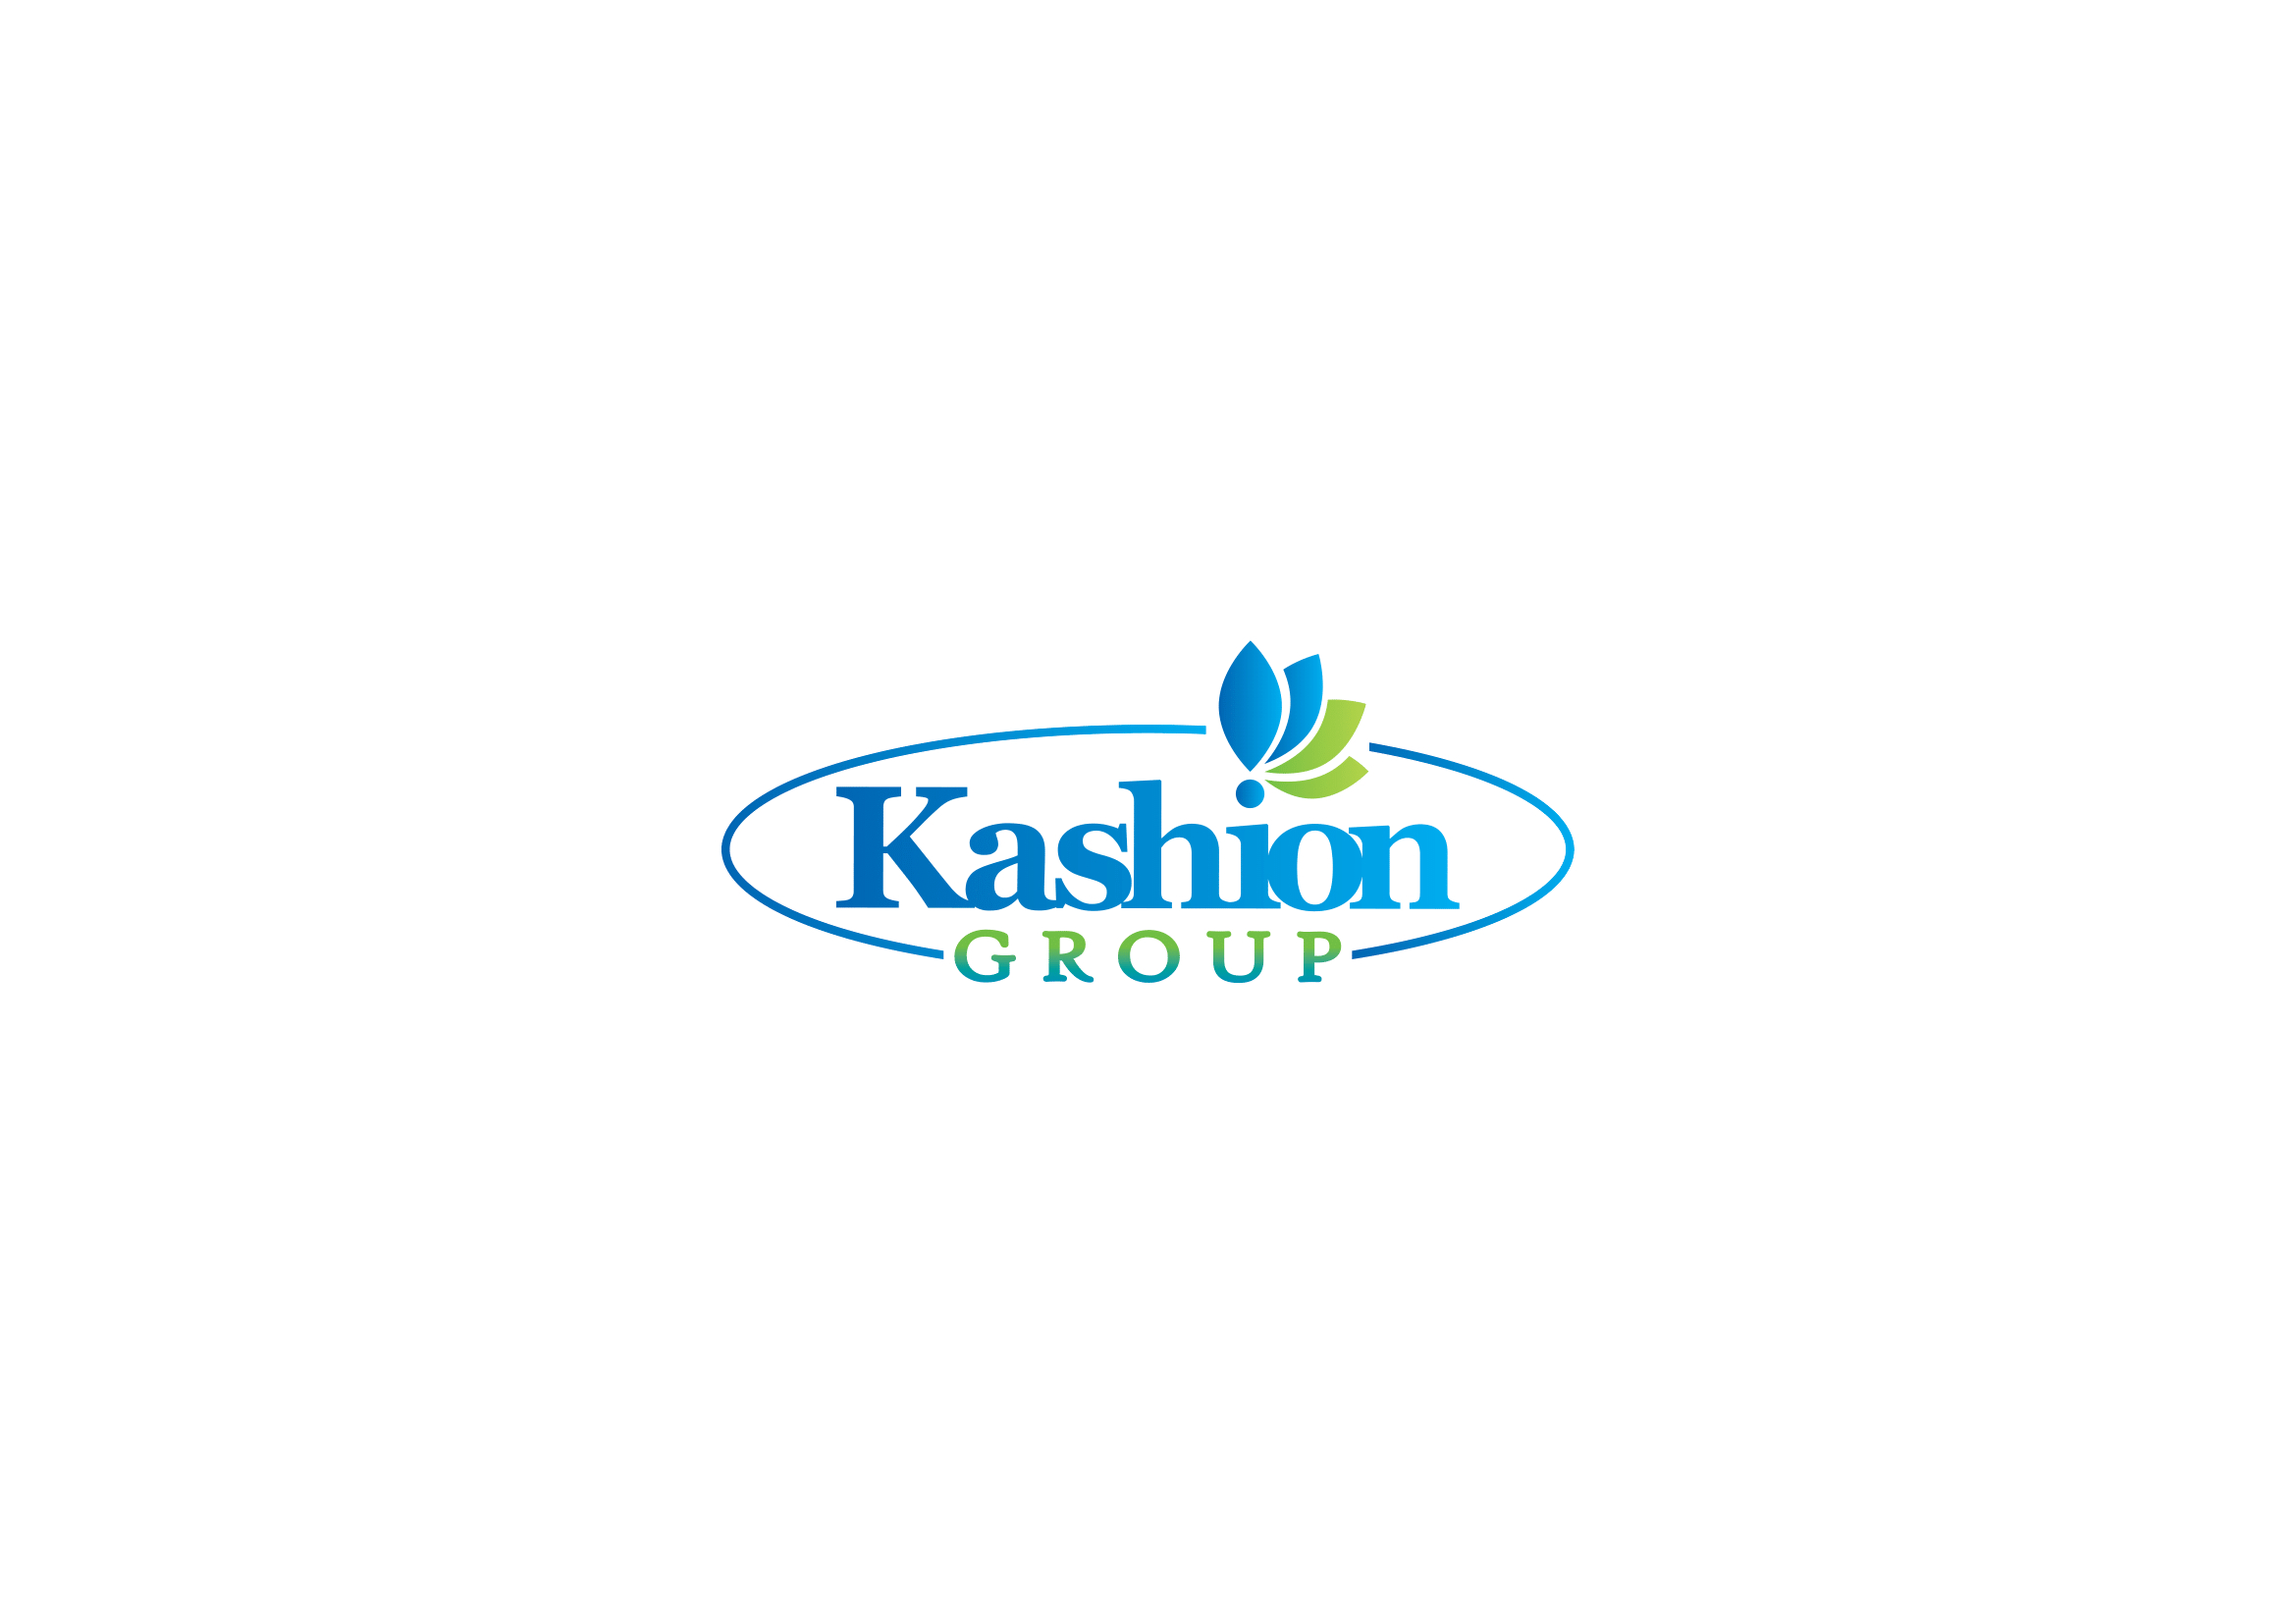 About Kashion Group